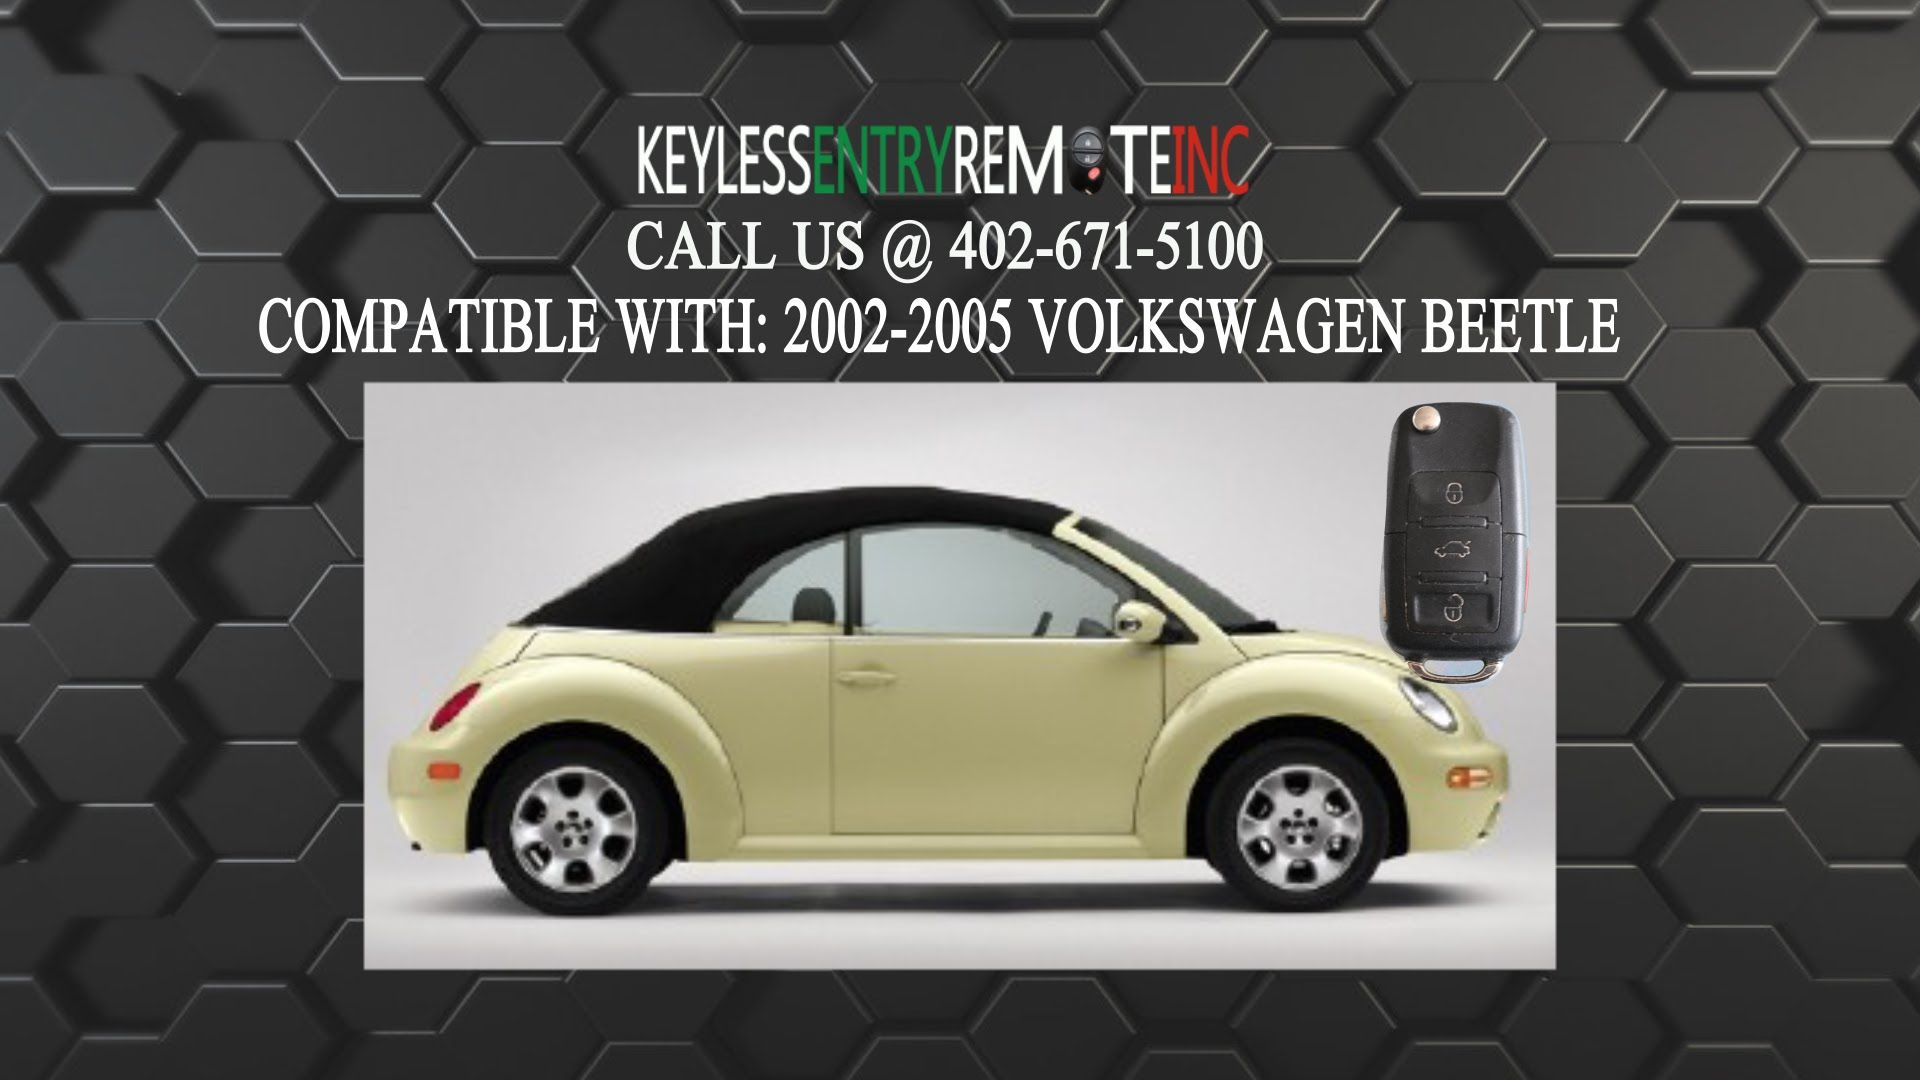 How To Replace Volkswagen Beetle Key Fob Battery 2002 2003